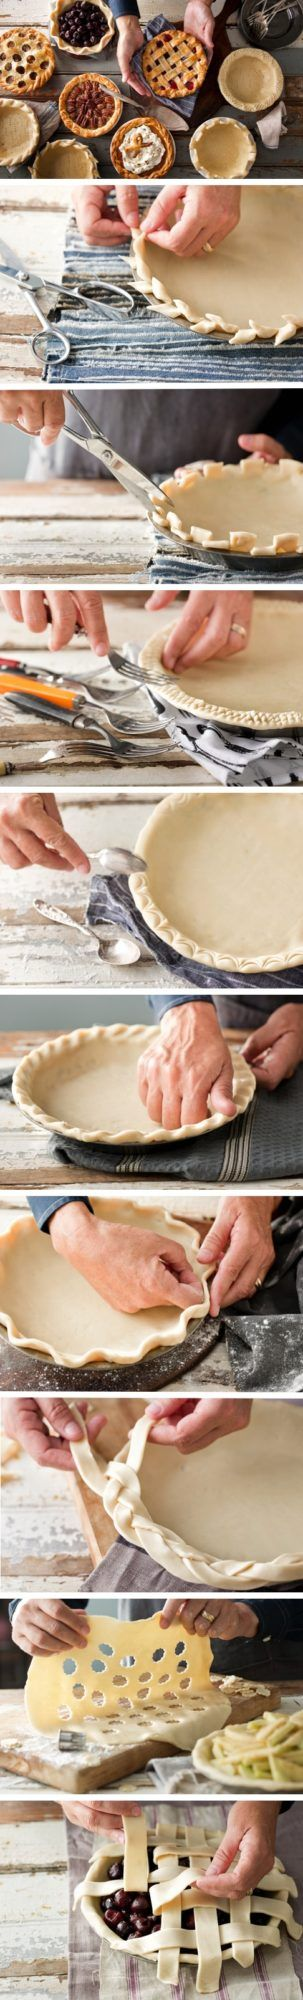 Looking for a unique design for your last peach pie of the season? These 20 pie crimping techniques are beautiful for any occasion!